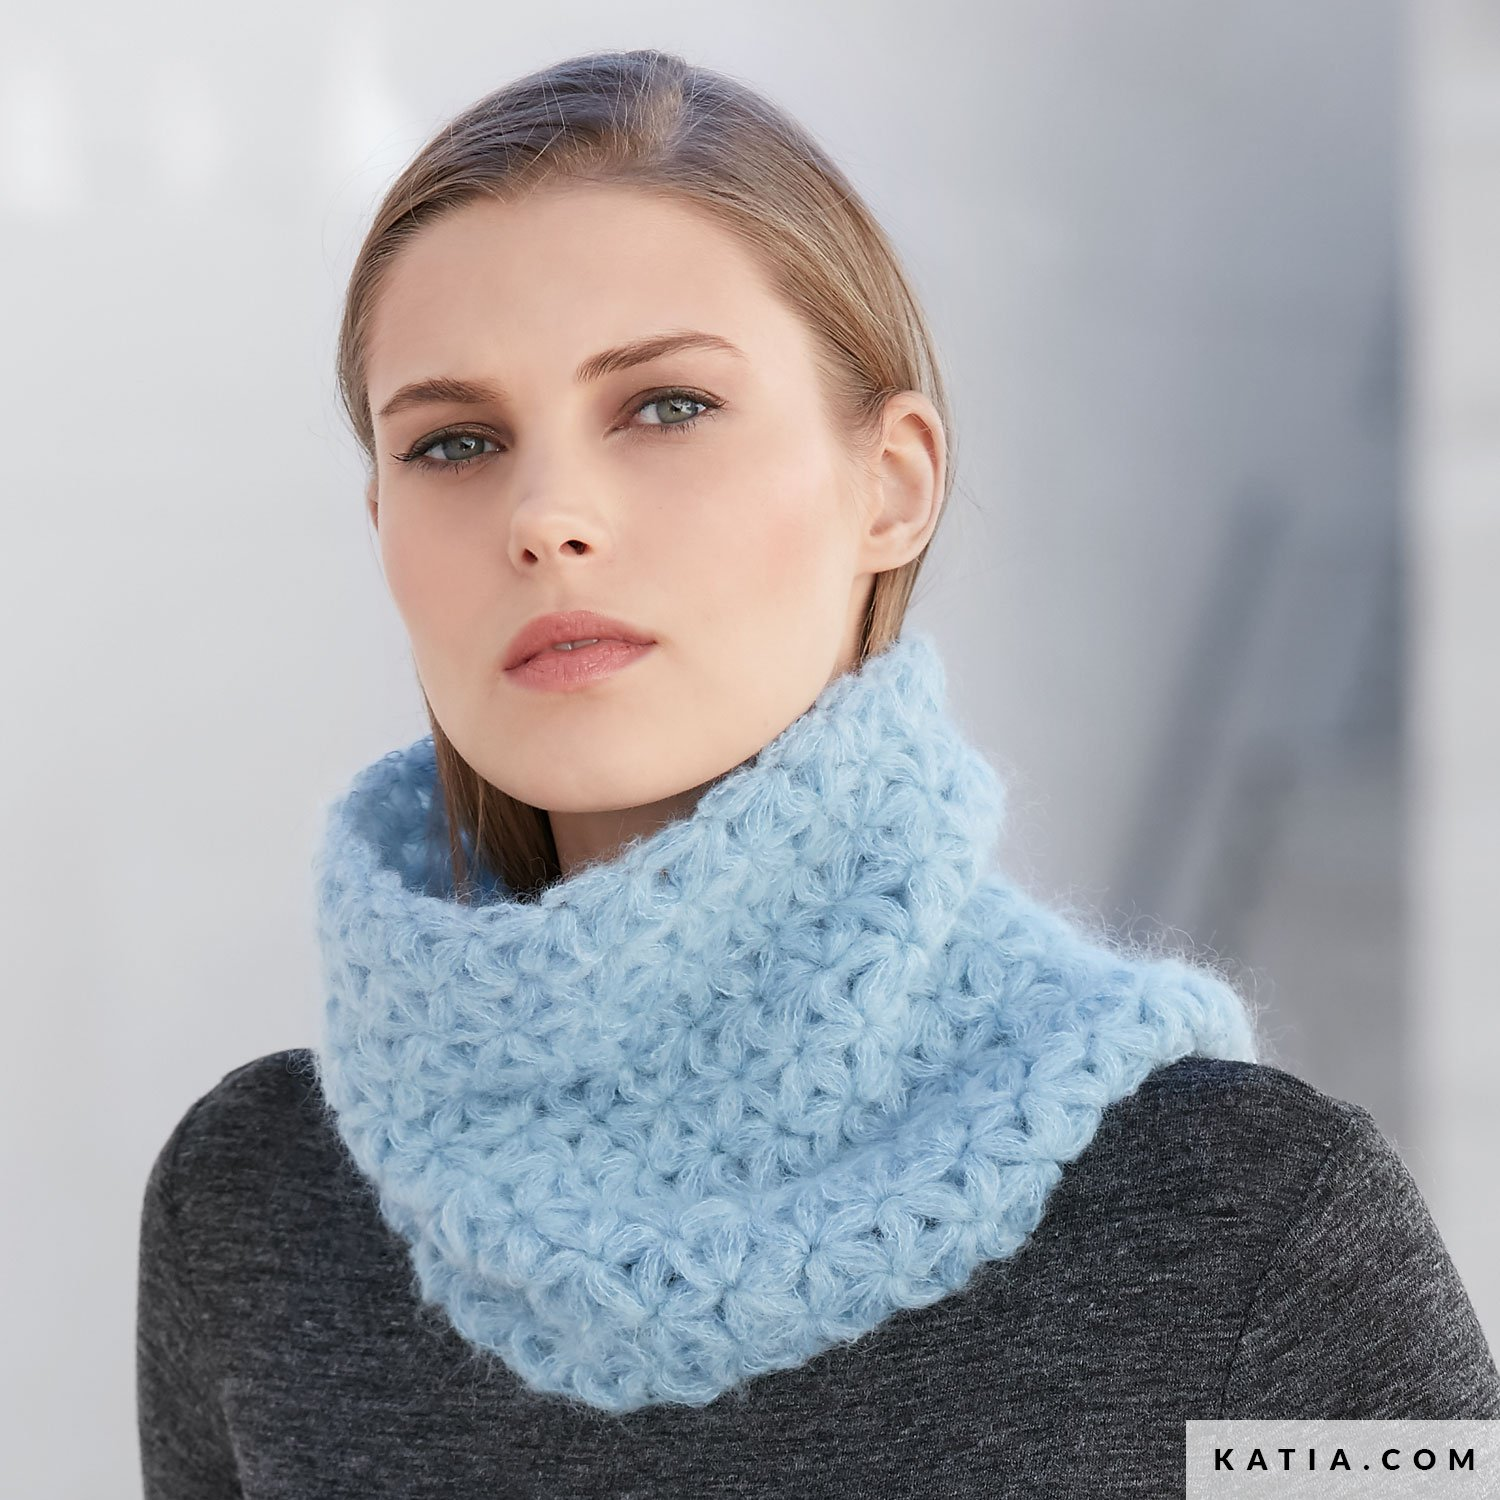 Warm crochet for women: knitting patterns, photo